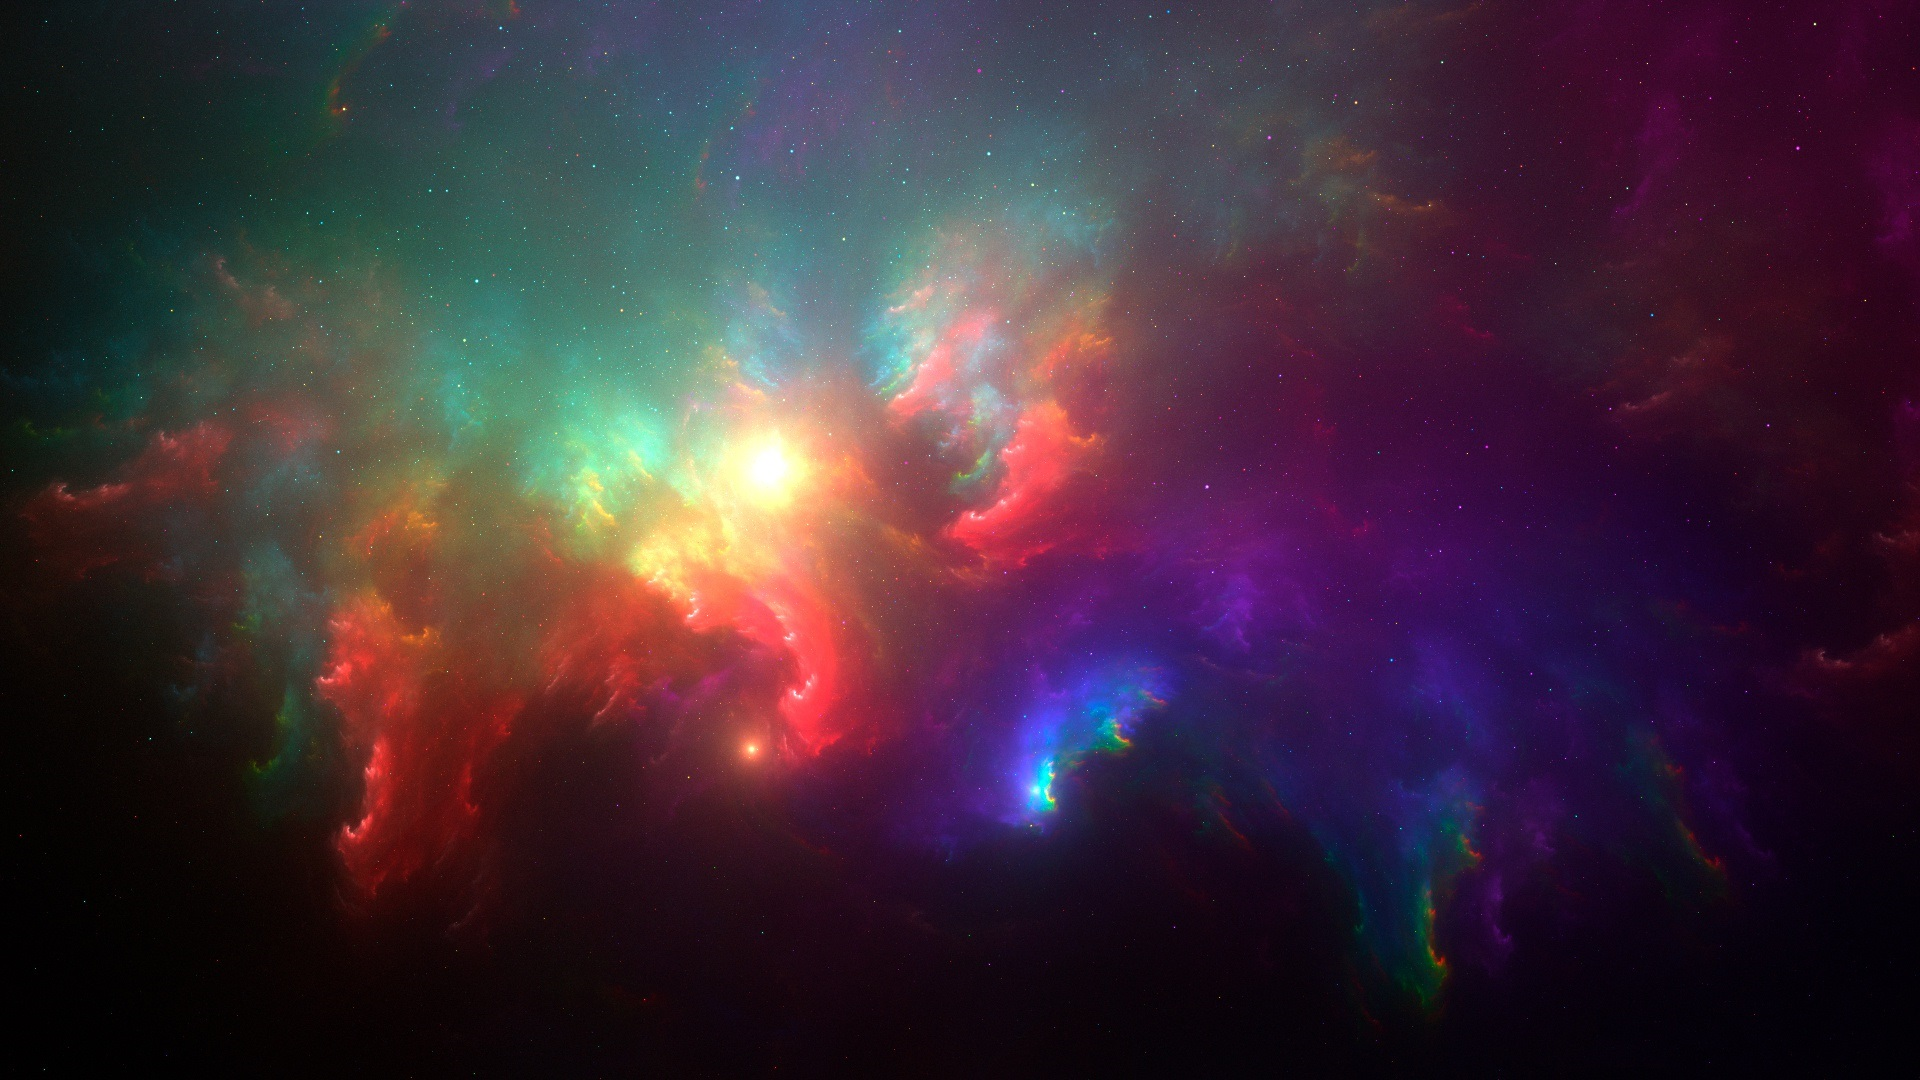 Wallpaper Beautiful Space Stars Galaxy 1920x1080 Full Hd